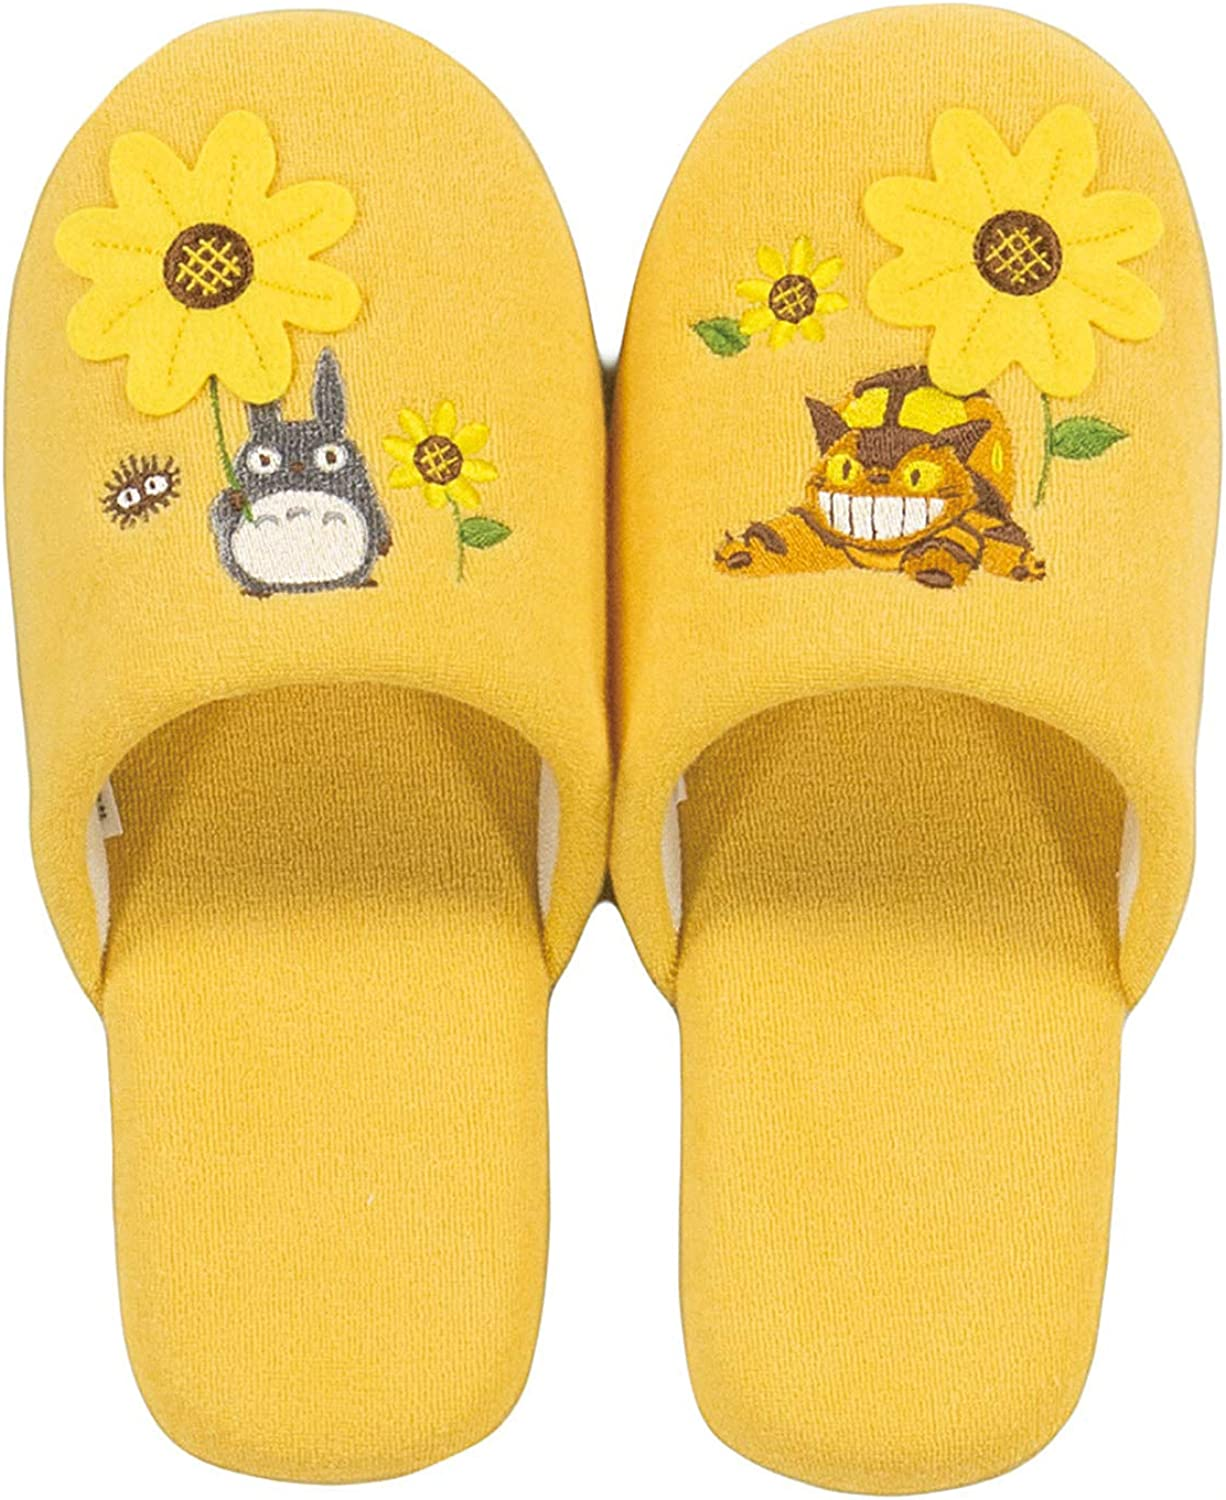 Senko Studio Ghibli My Neighbor Totgold Soft Slippers Women One Size 24cm from Japan 66798 Yellow